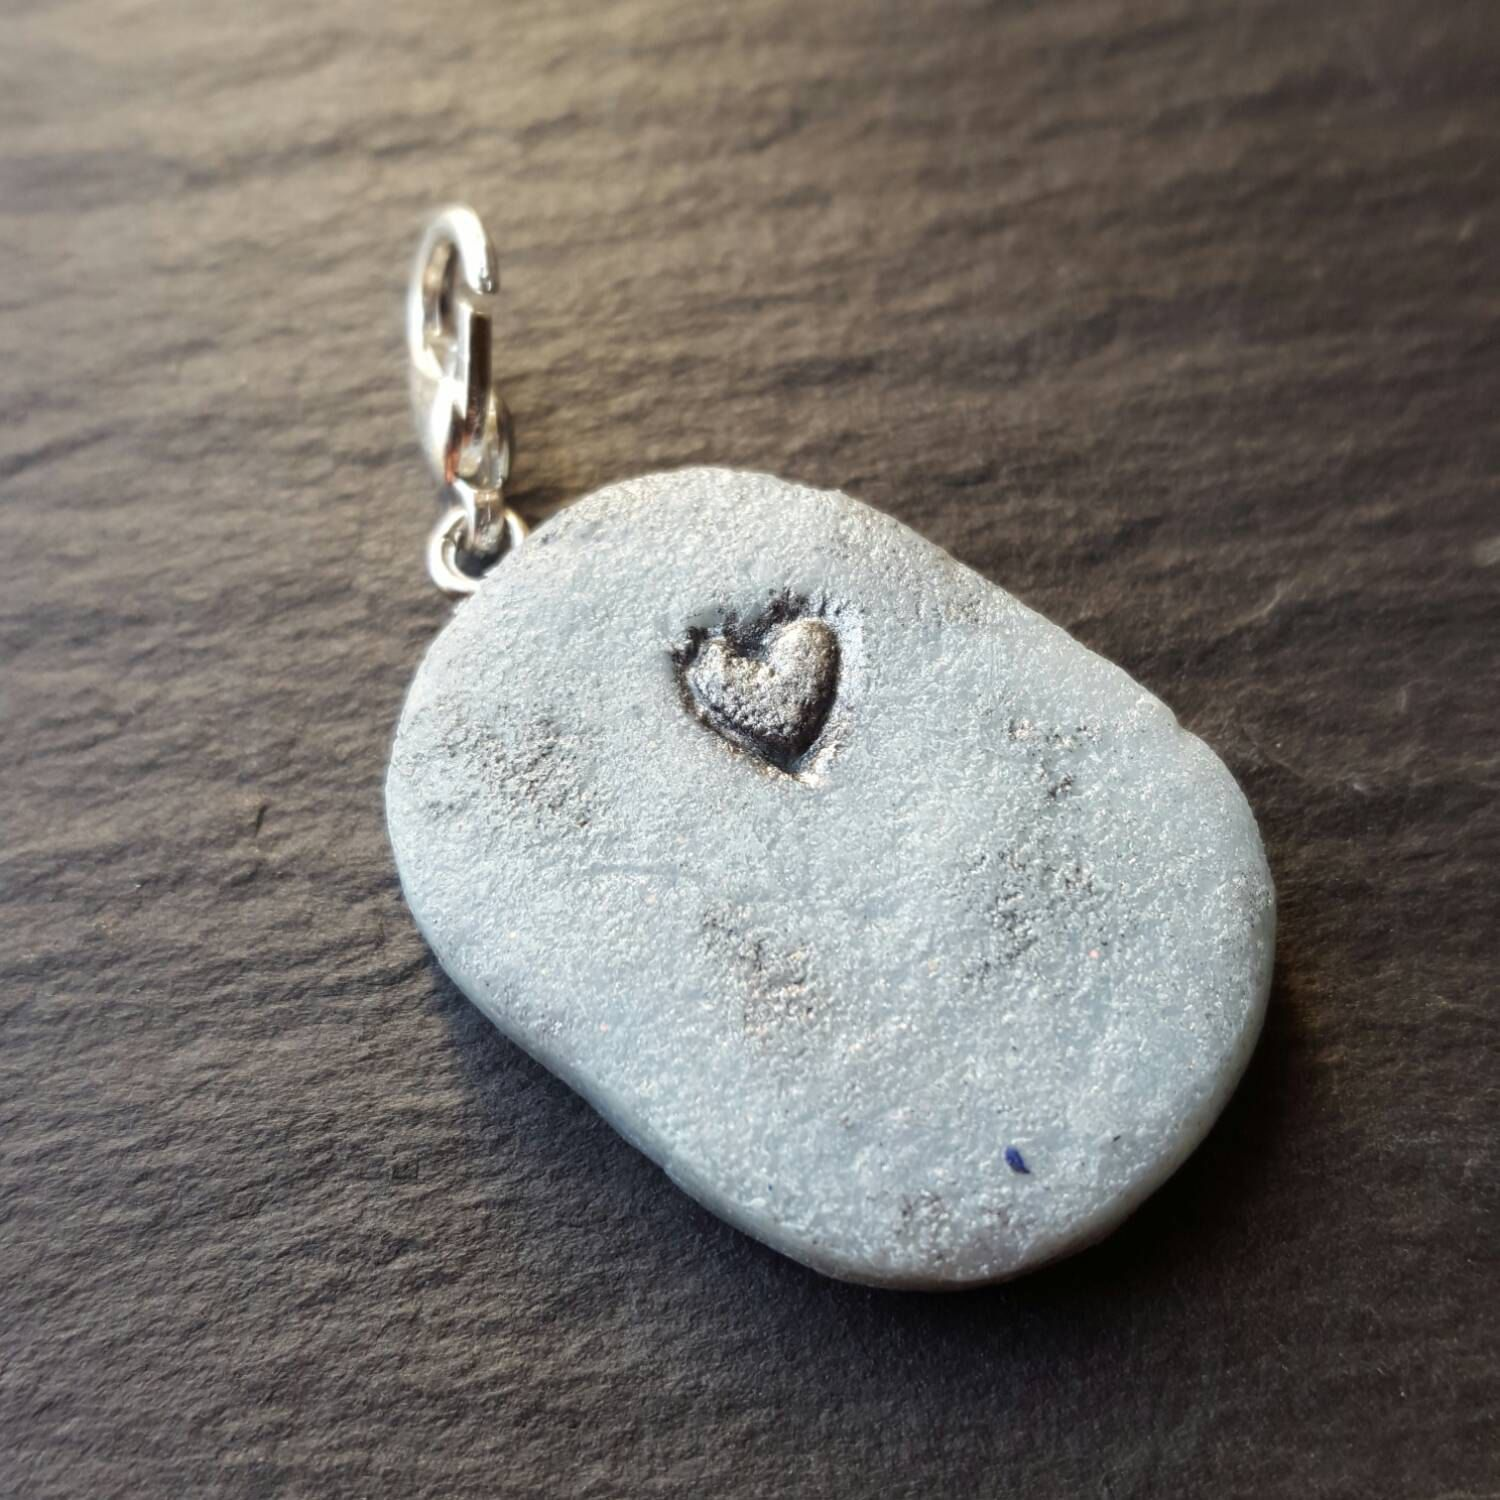 Love charm, polymer clay charm, blue and silver charm, key chain or bag accessory, valentines gift, girlfriend, boyfriend, best friend by chapelviewcrafts on Etsy